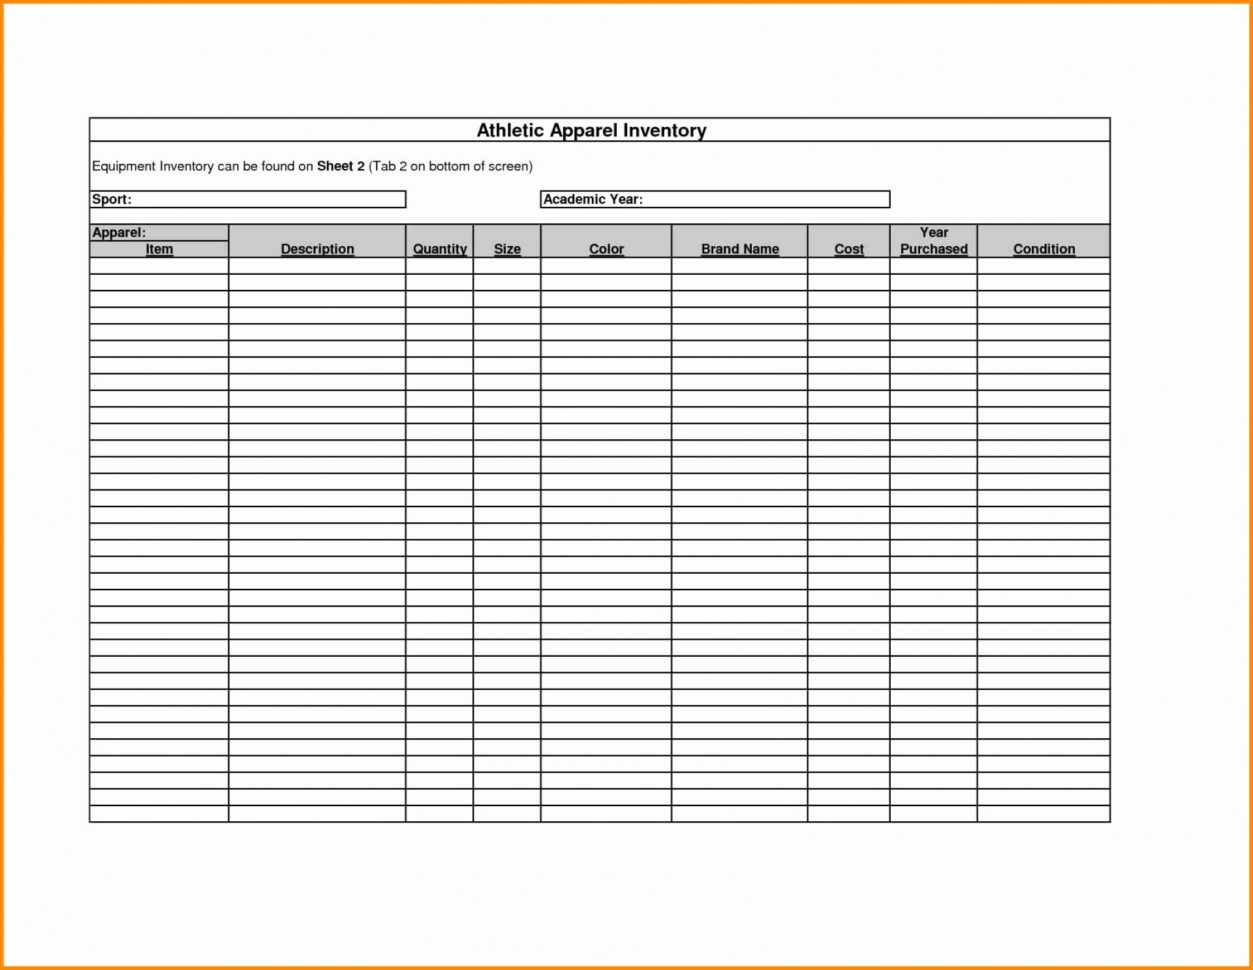 Divorce Inventory Spreadsheet Intended For Forms Inventory Business School Asset Sheet And Tracking Singular